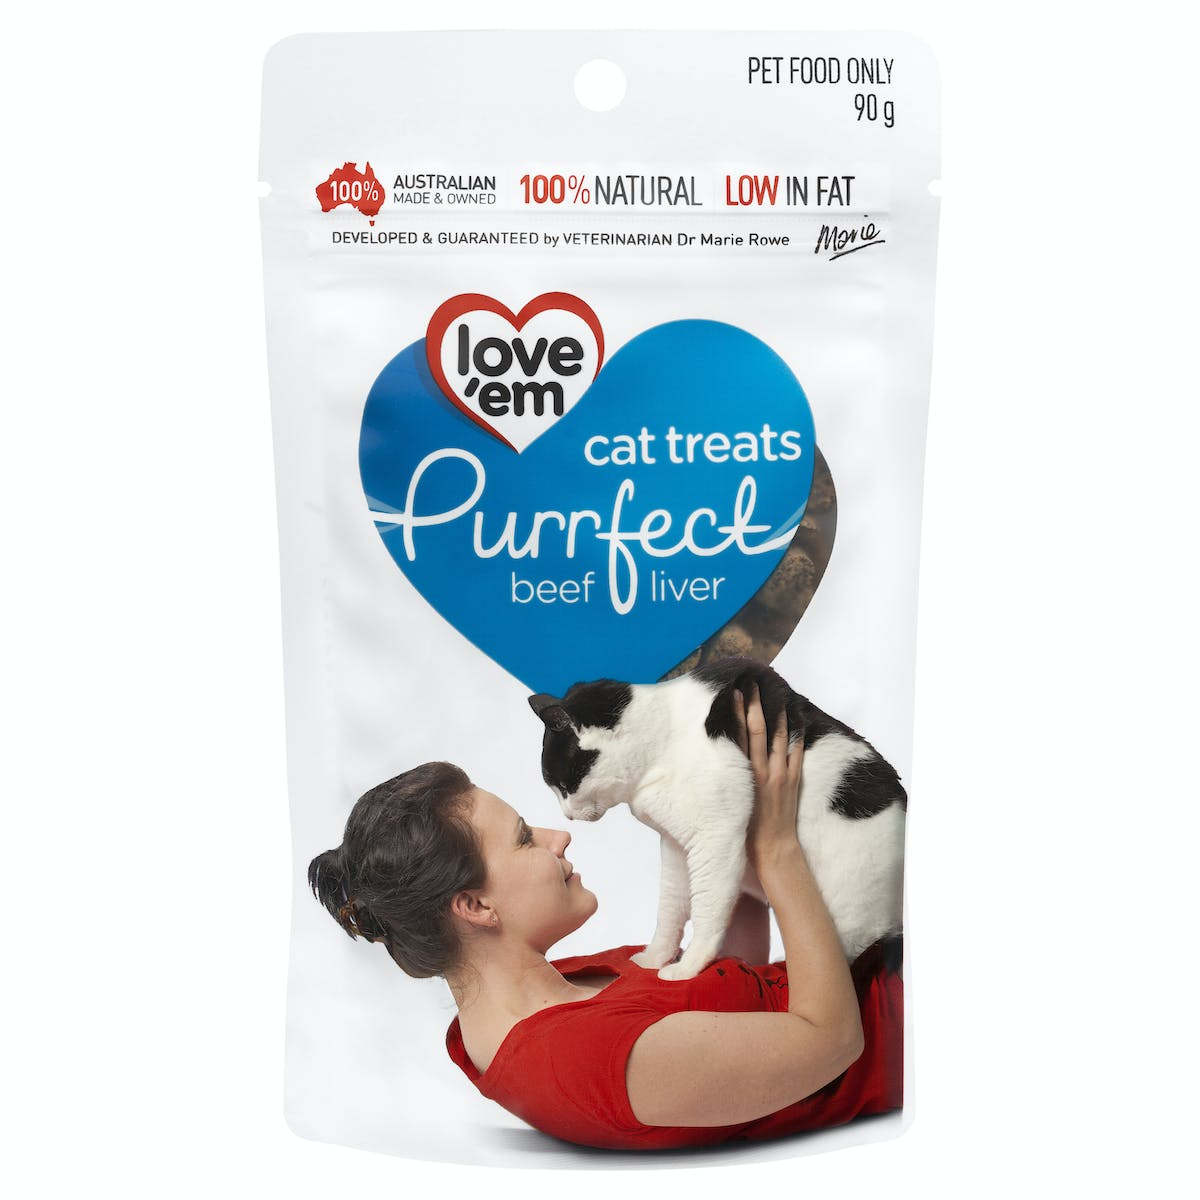 Love'em | cat treats purrfect beef liver | Indulge cat | Front of pack